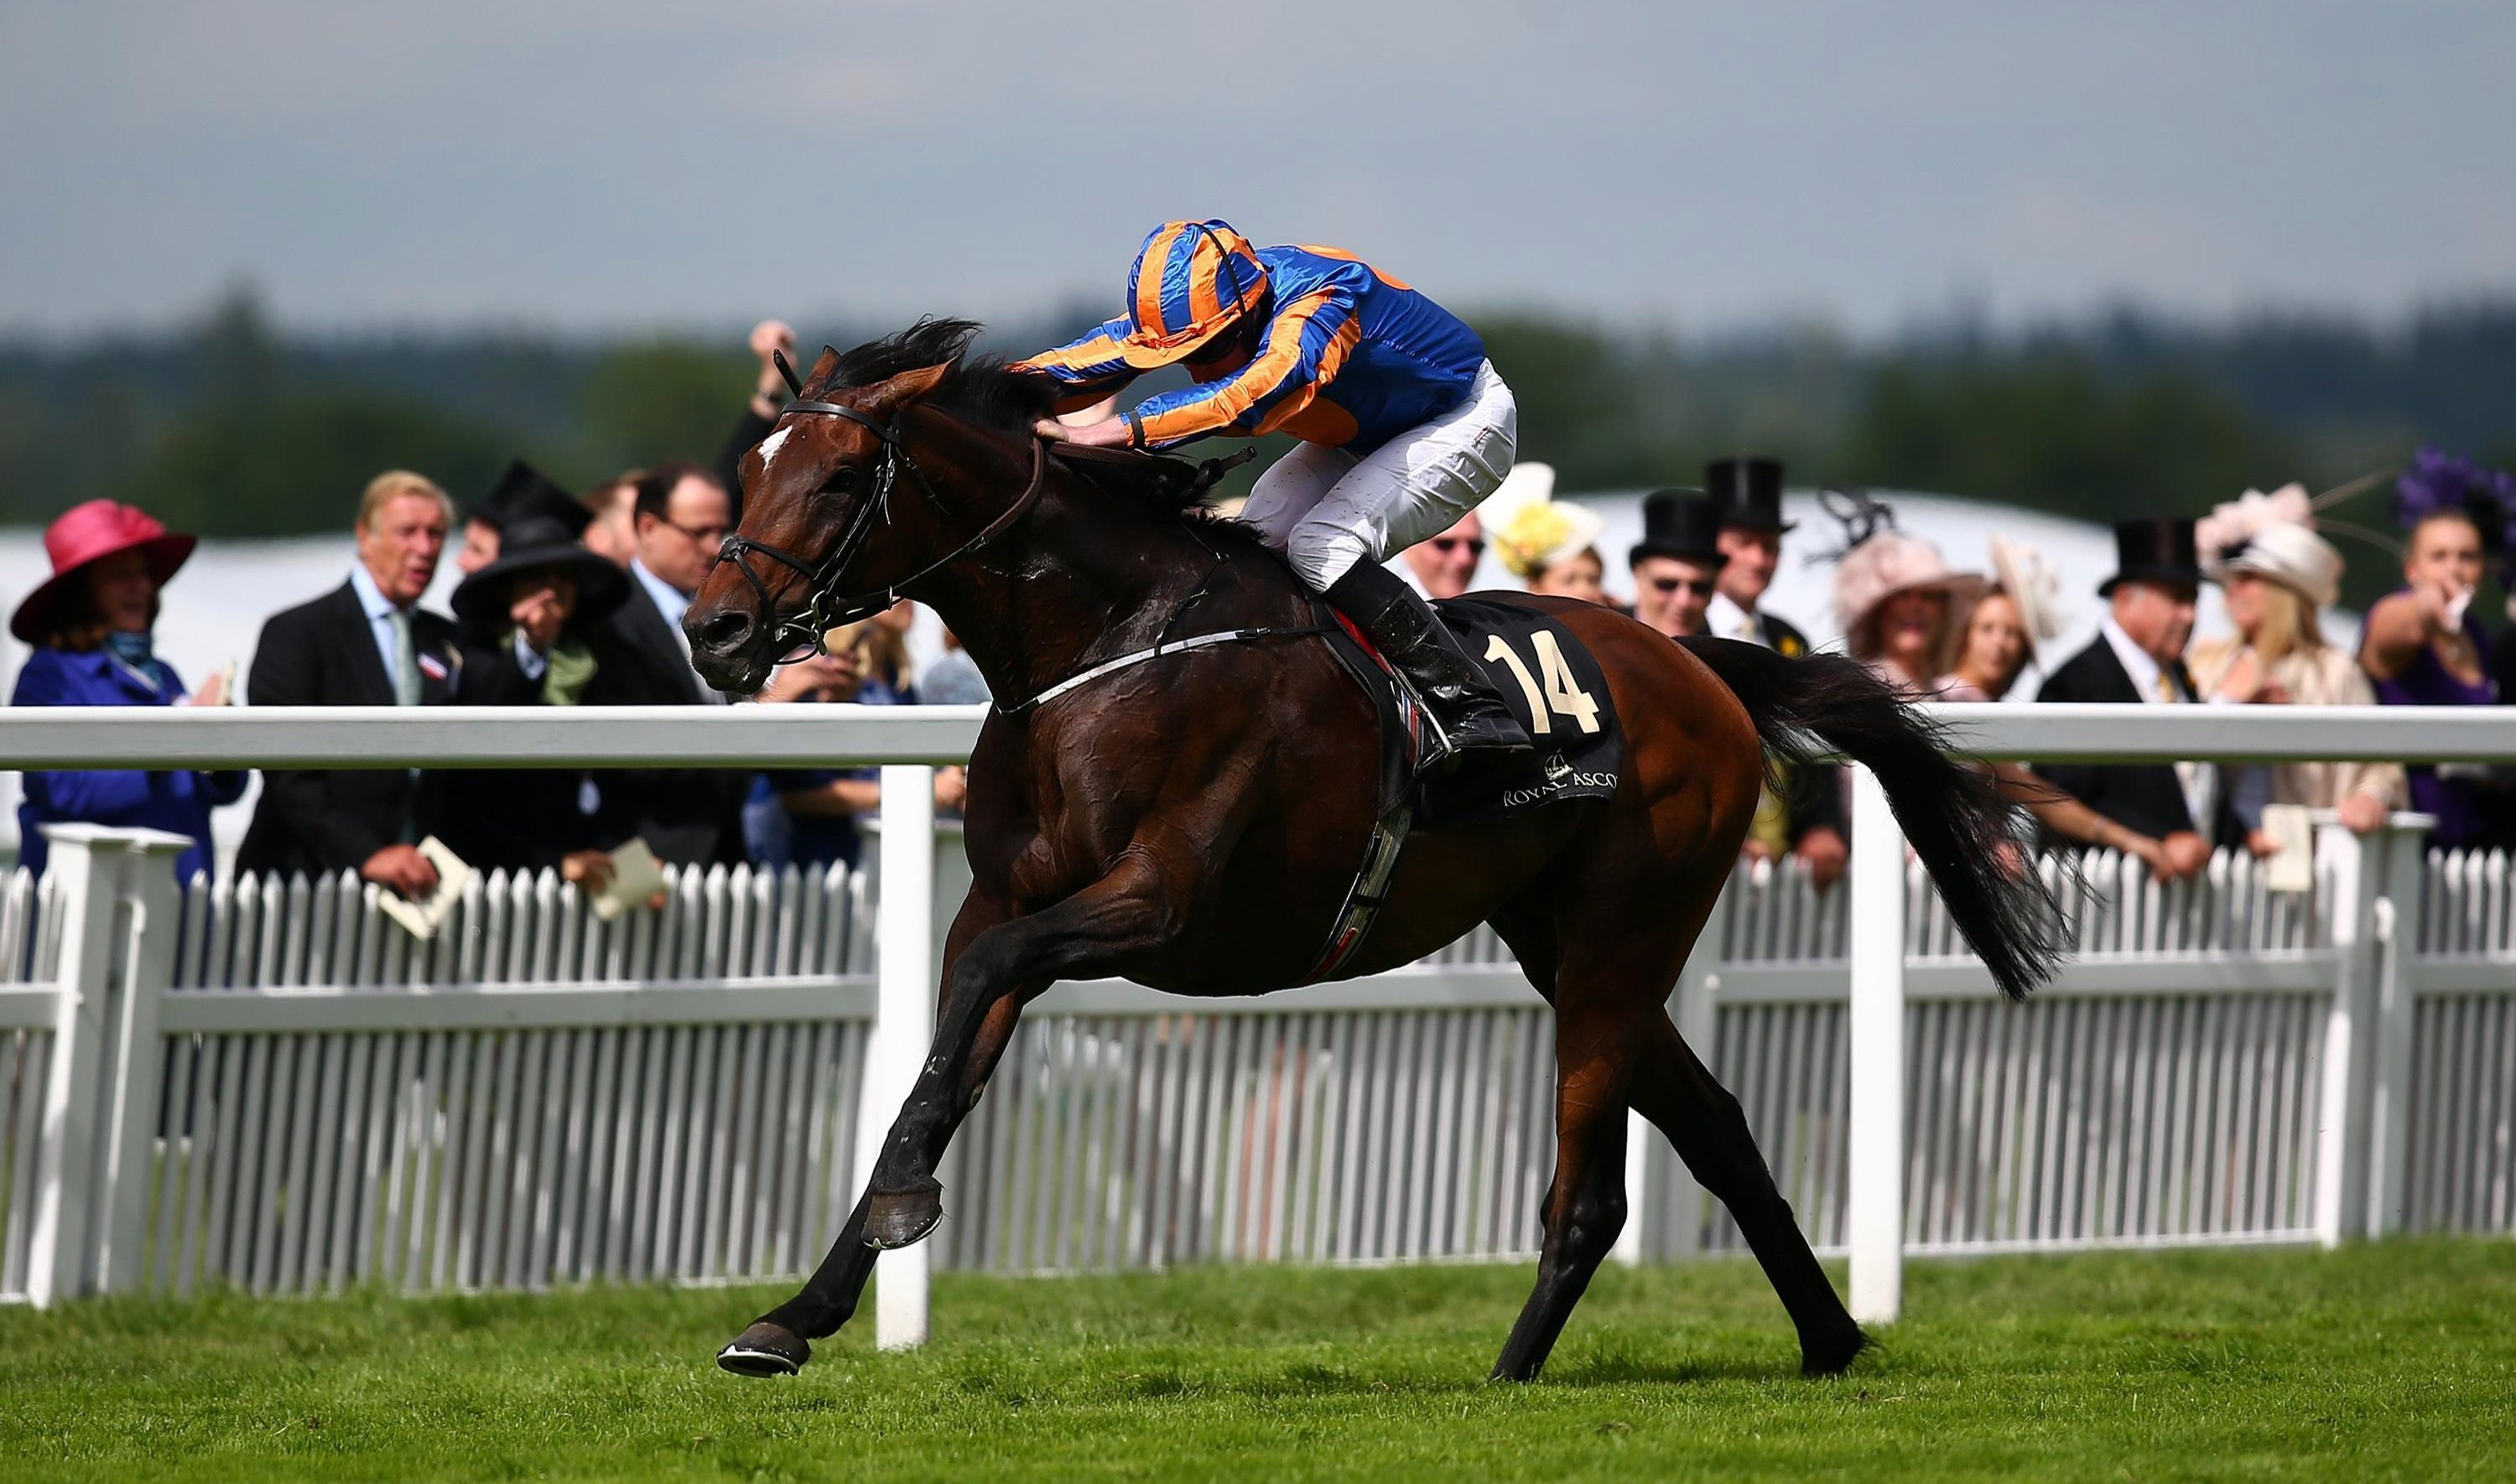 Order Of St George will be bidding to regain his title at Royal Ascot